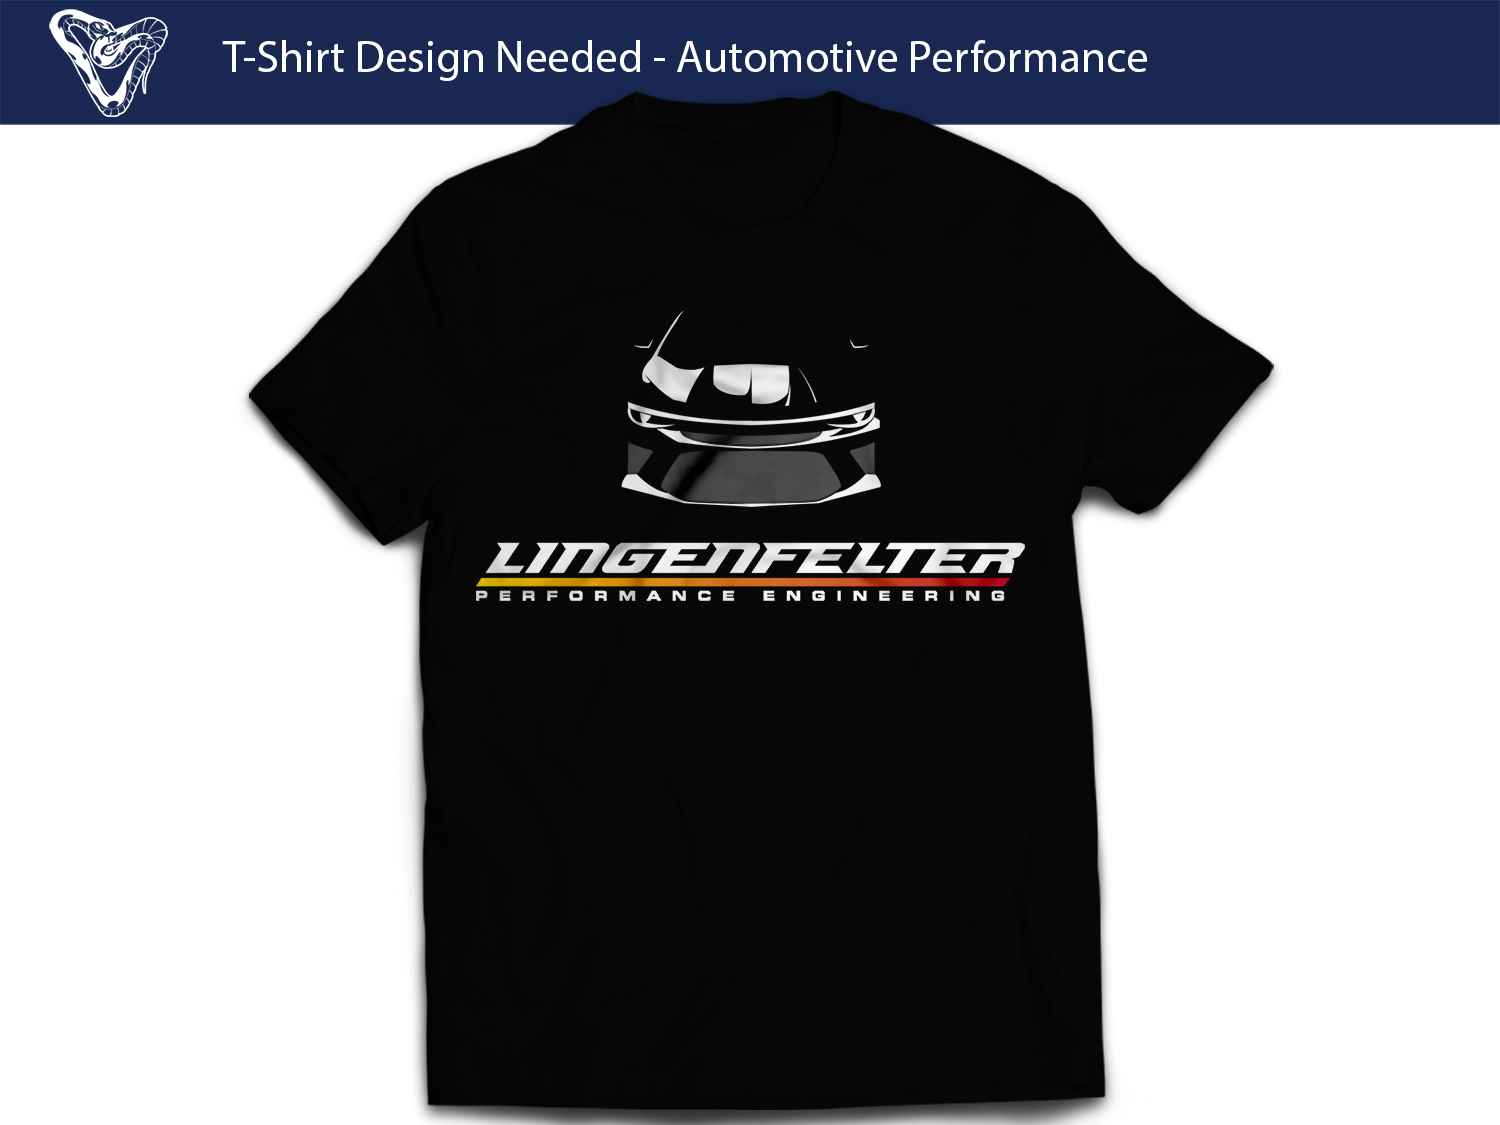 Shirt design needed - T Shirt Design By Shemet For T Shirt Design Needed Automotive Performance Company